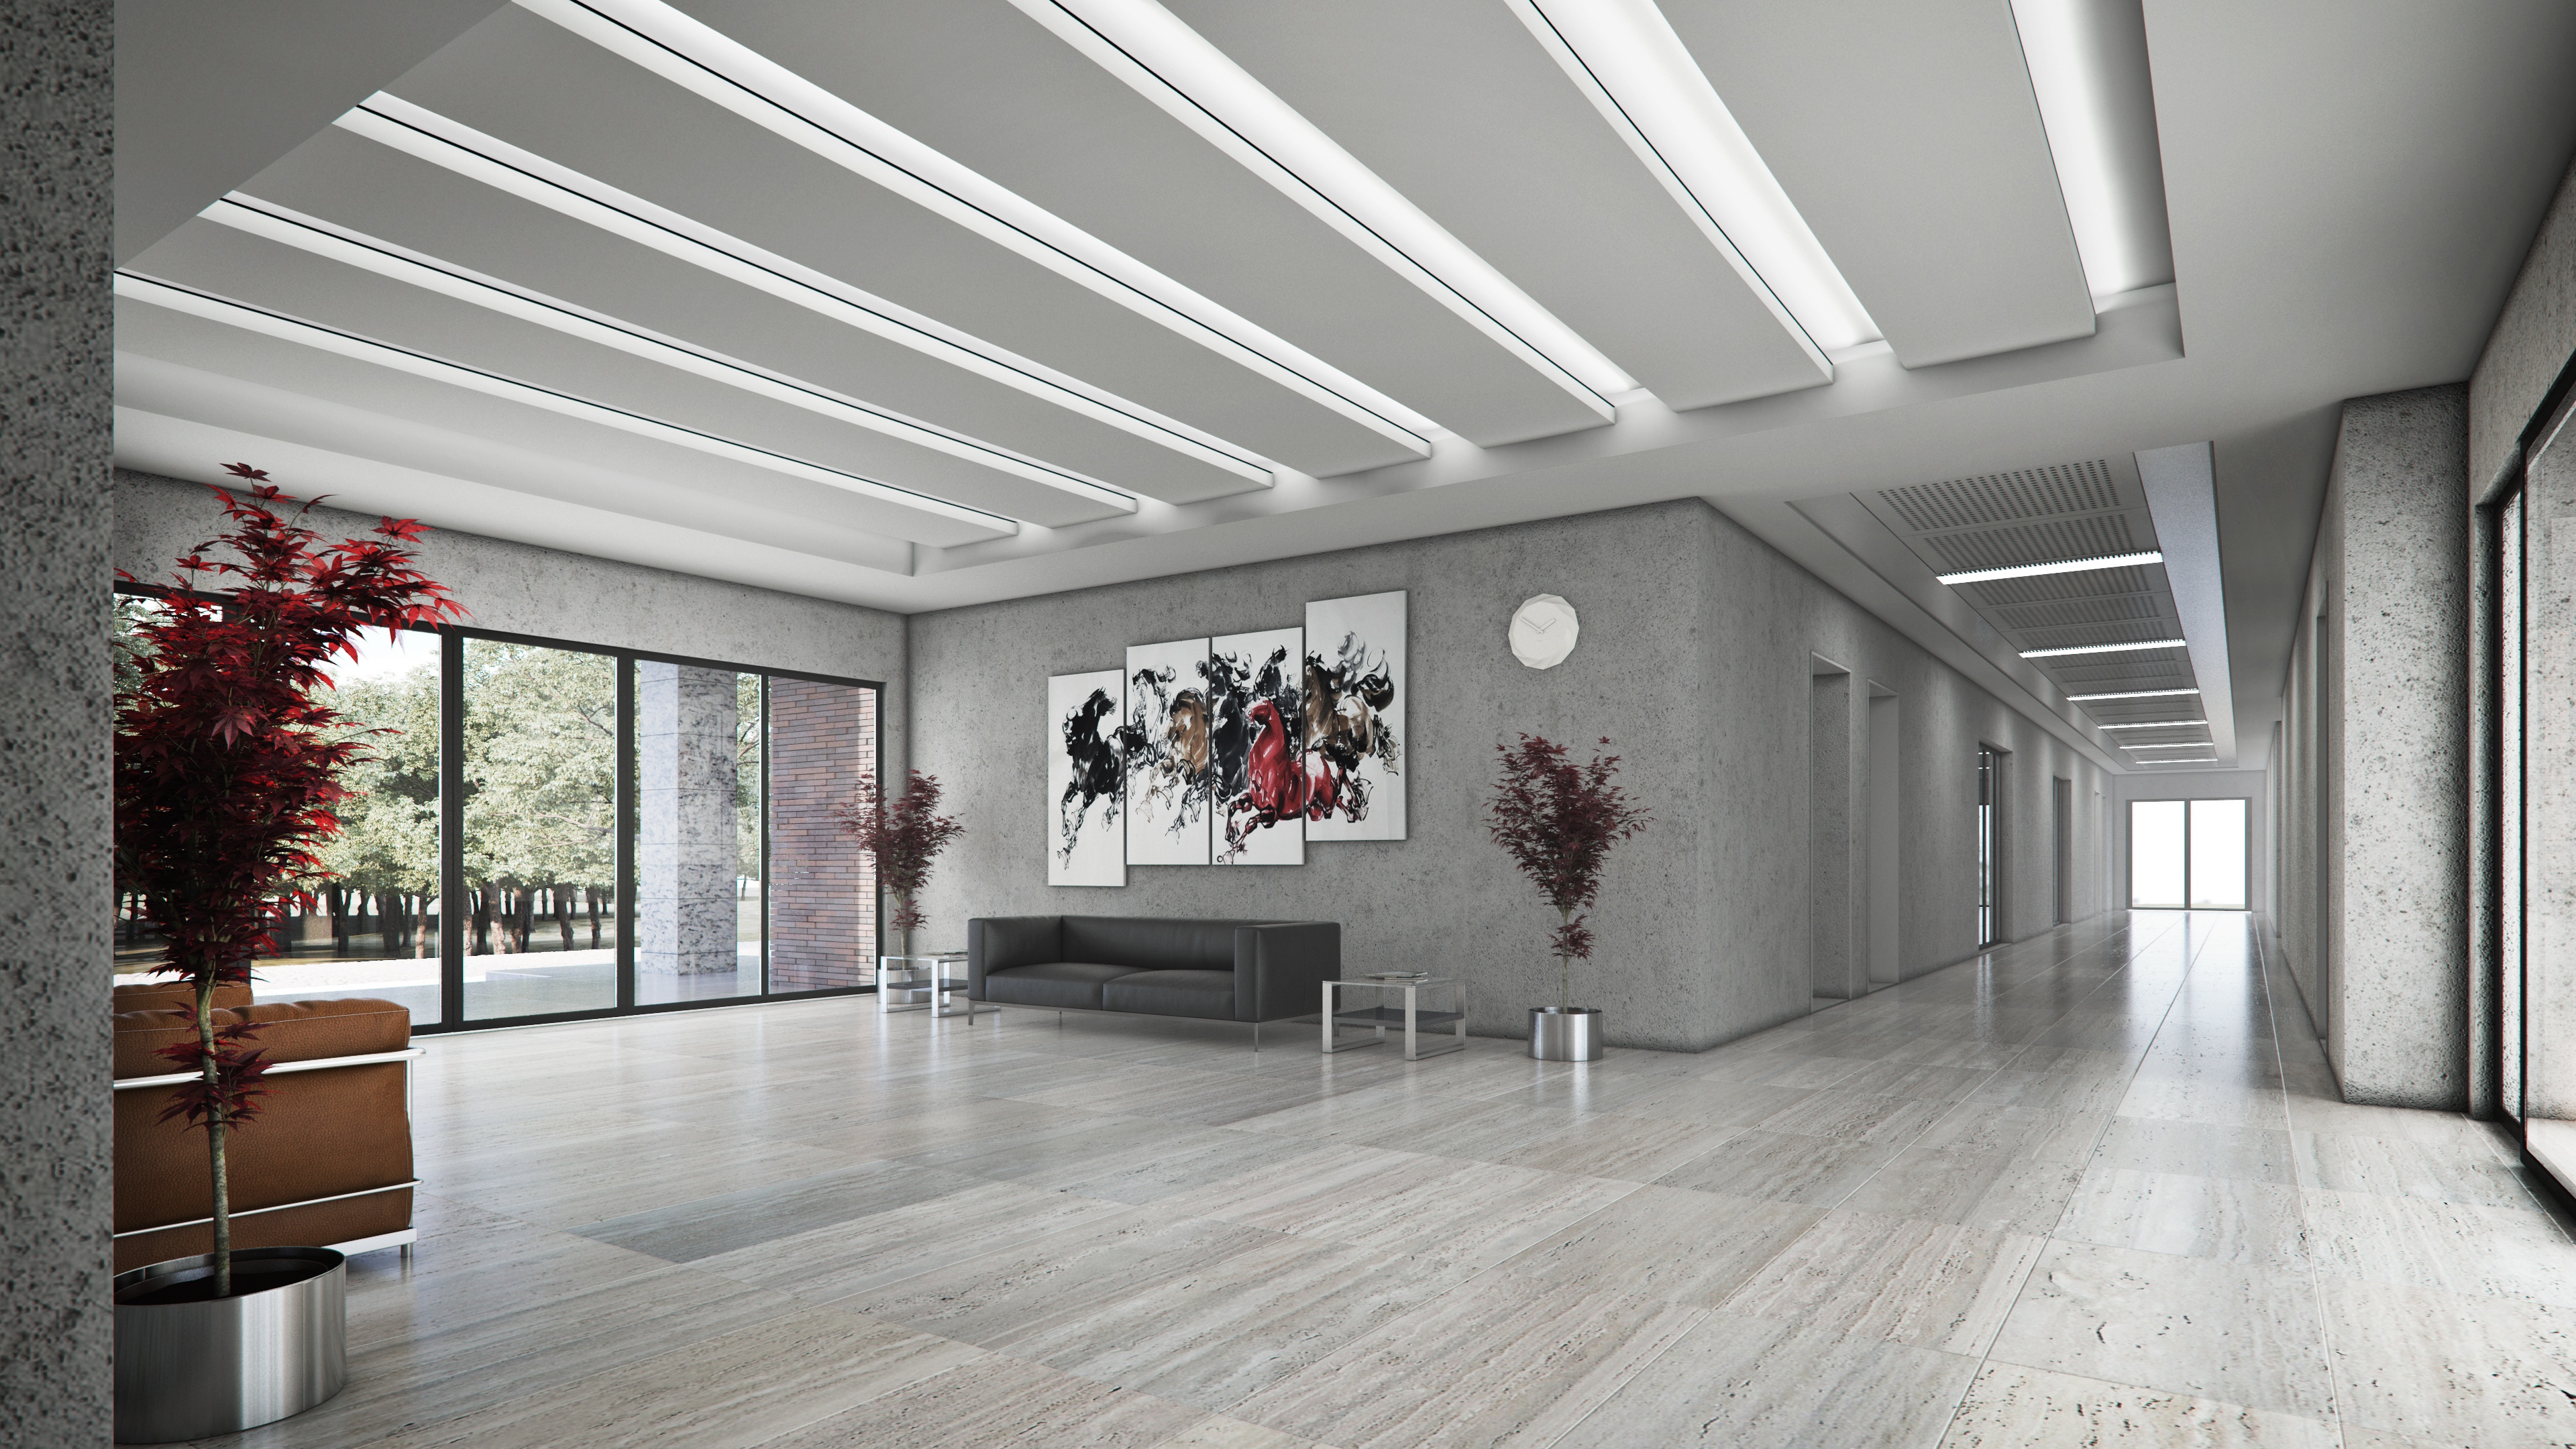 Camlidere, Campus, Lobby